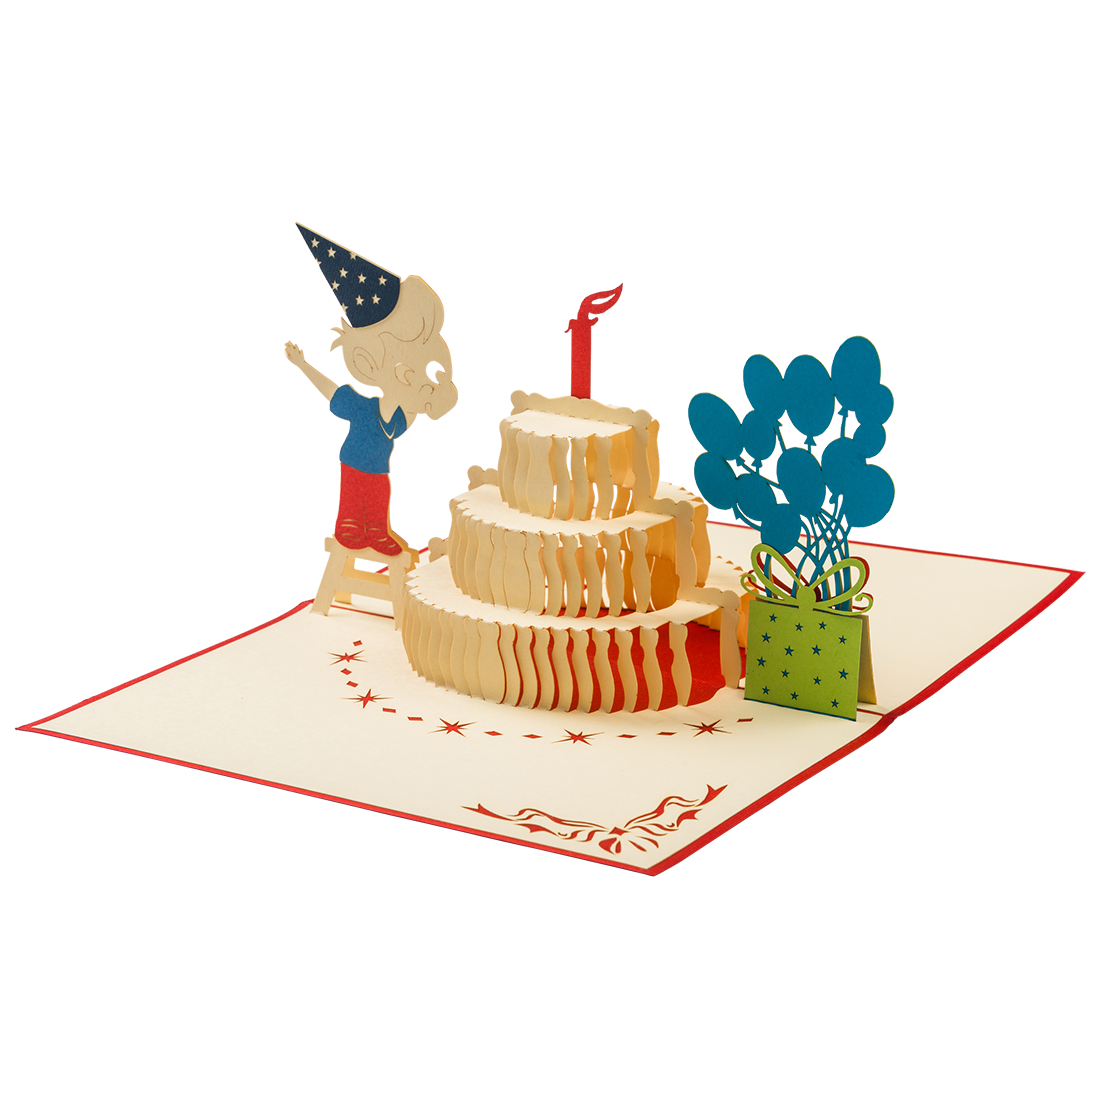 Png Images Of Blonde Blowing Out Birthday Candles Boy Open Card Now